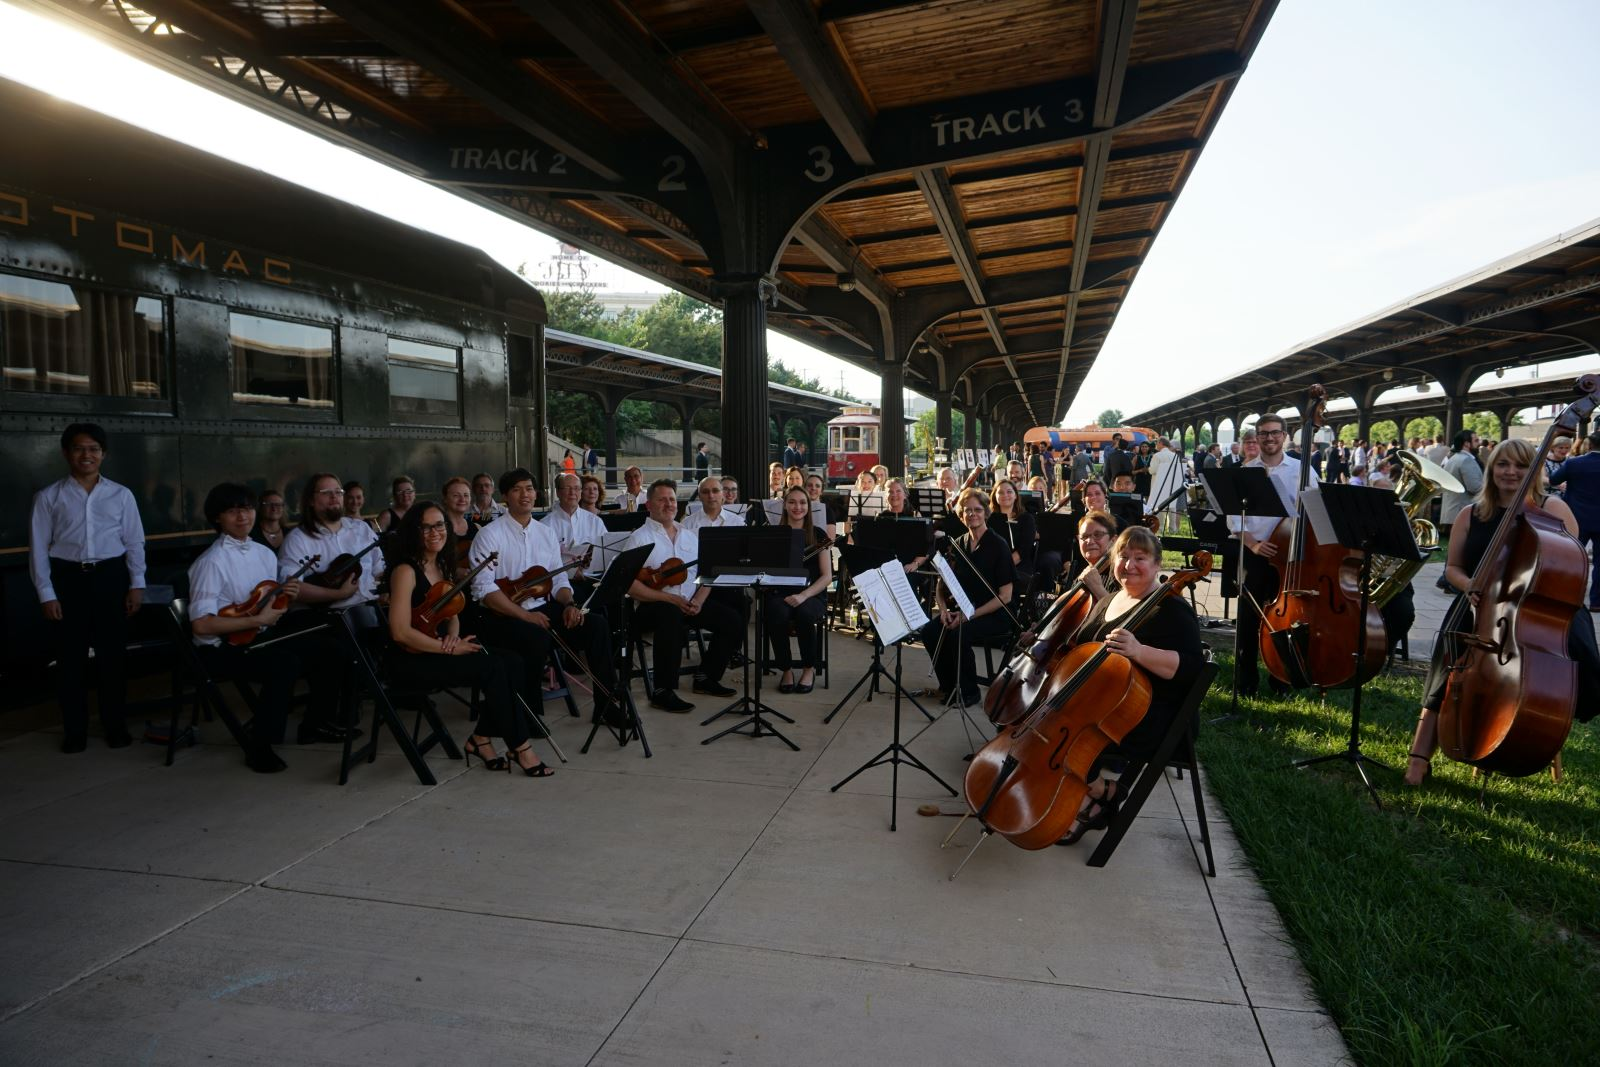 Members of VCU Health Orchestra play